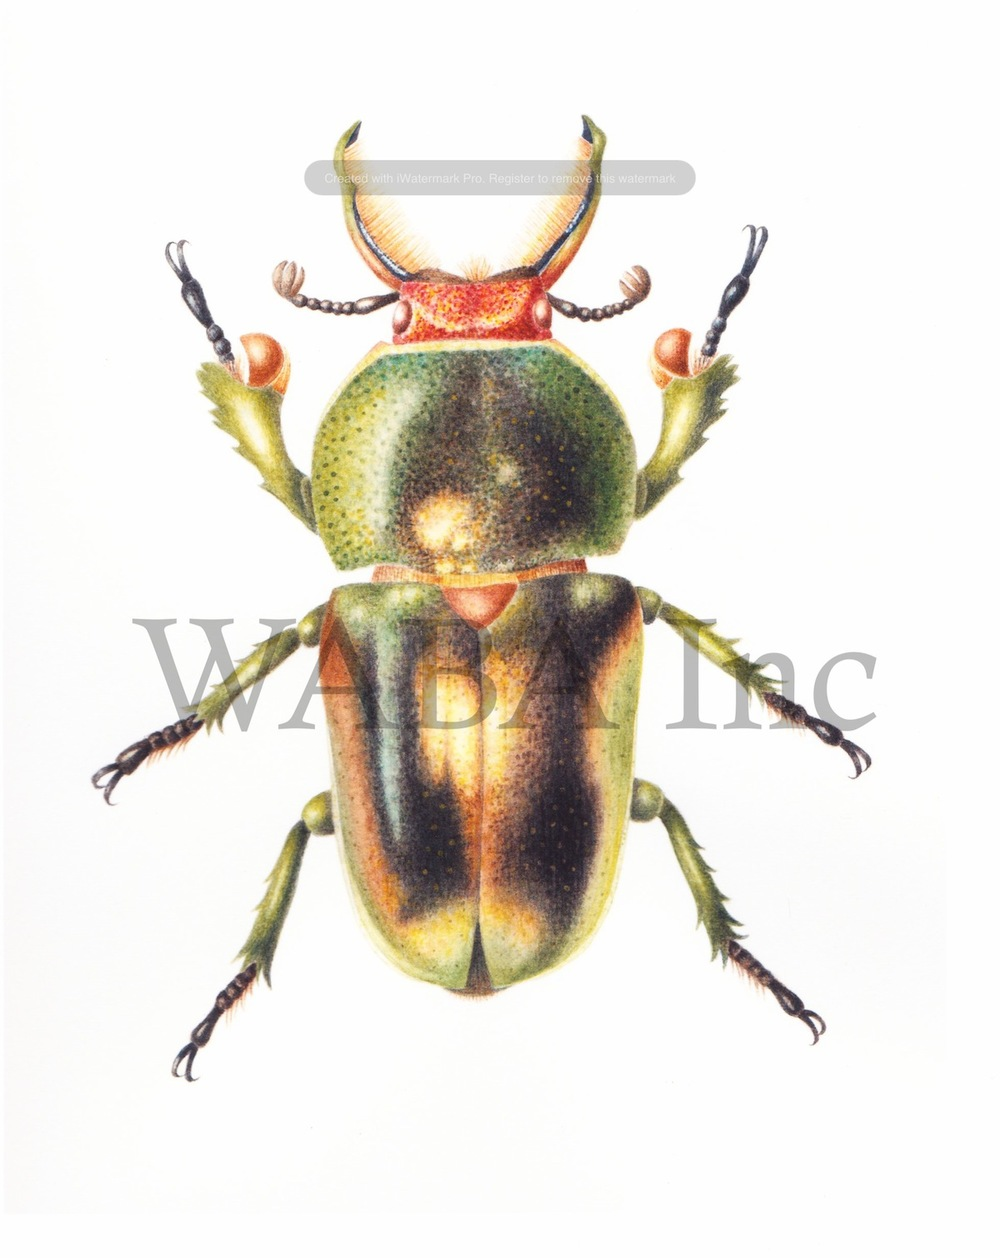 Golden Green Stag Beetle, Cheryl Hodges, watercolour, 190 x 150 mm